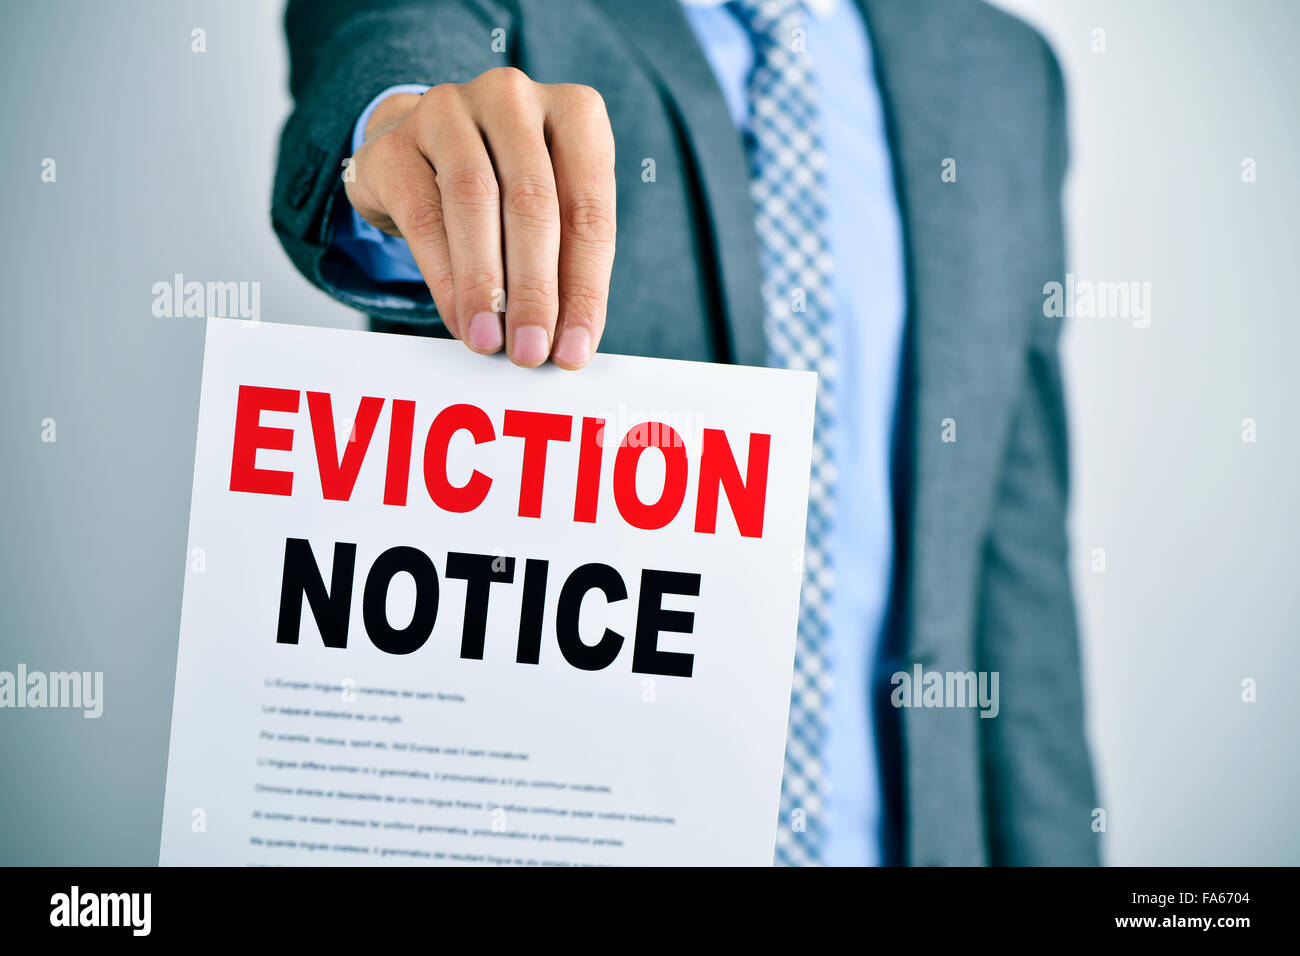 a young caucasian man wearing a gray suit shows a document with the text eviction notice - Stock Image